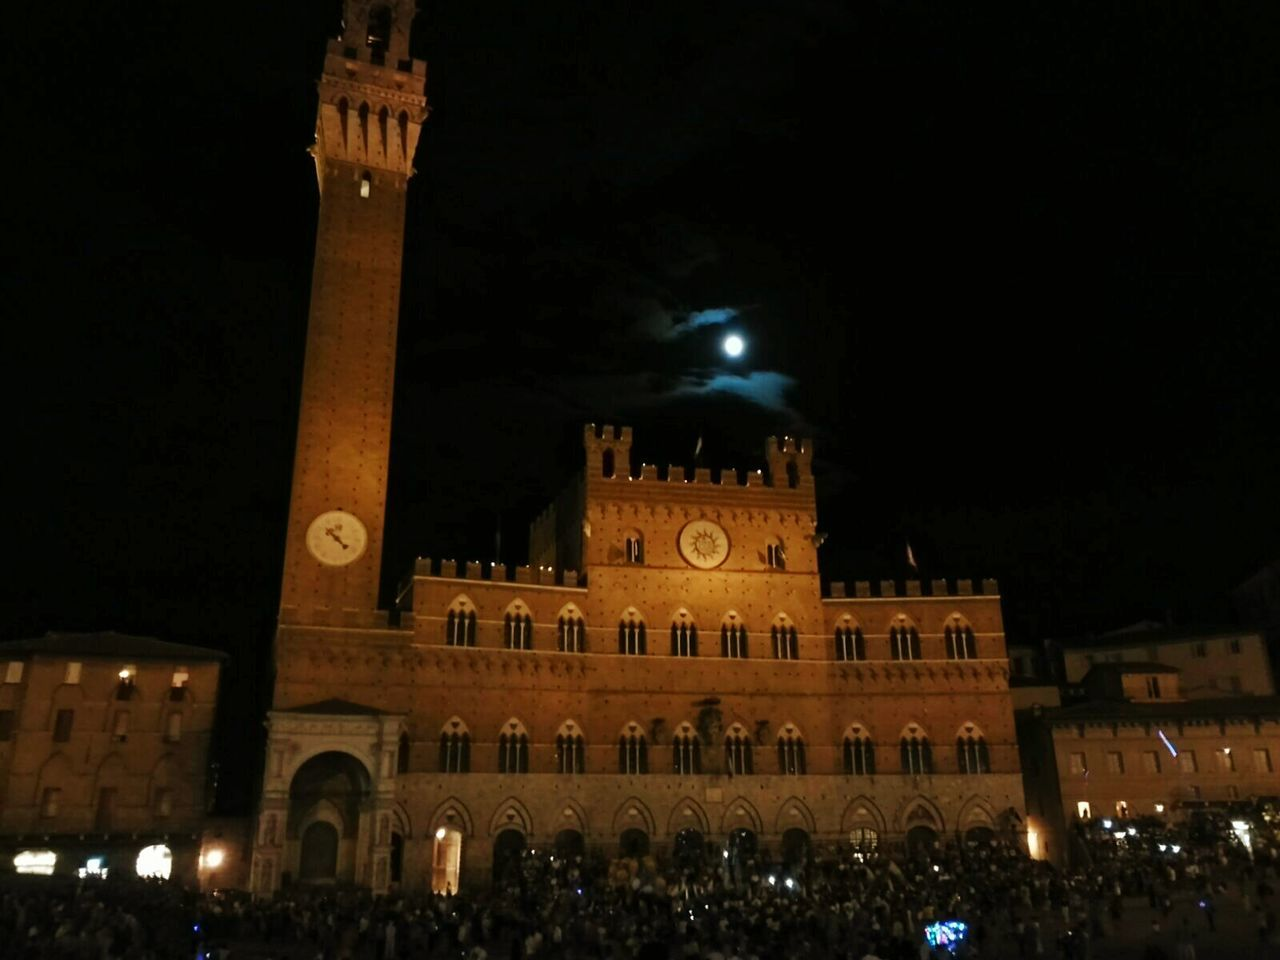 Italy Siena Palio Di Siena Torre Del Mangia Piazza Del Campo Palio By Night Sky Sky And Clouds Night Lights Night Photography Night View Sightseeing Light And Shadow Candle Moonlight Moon